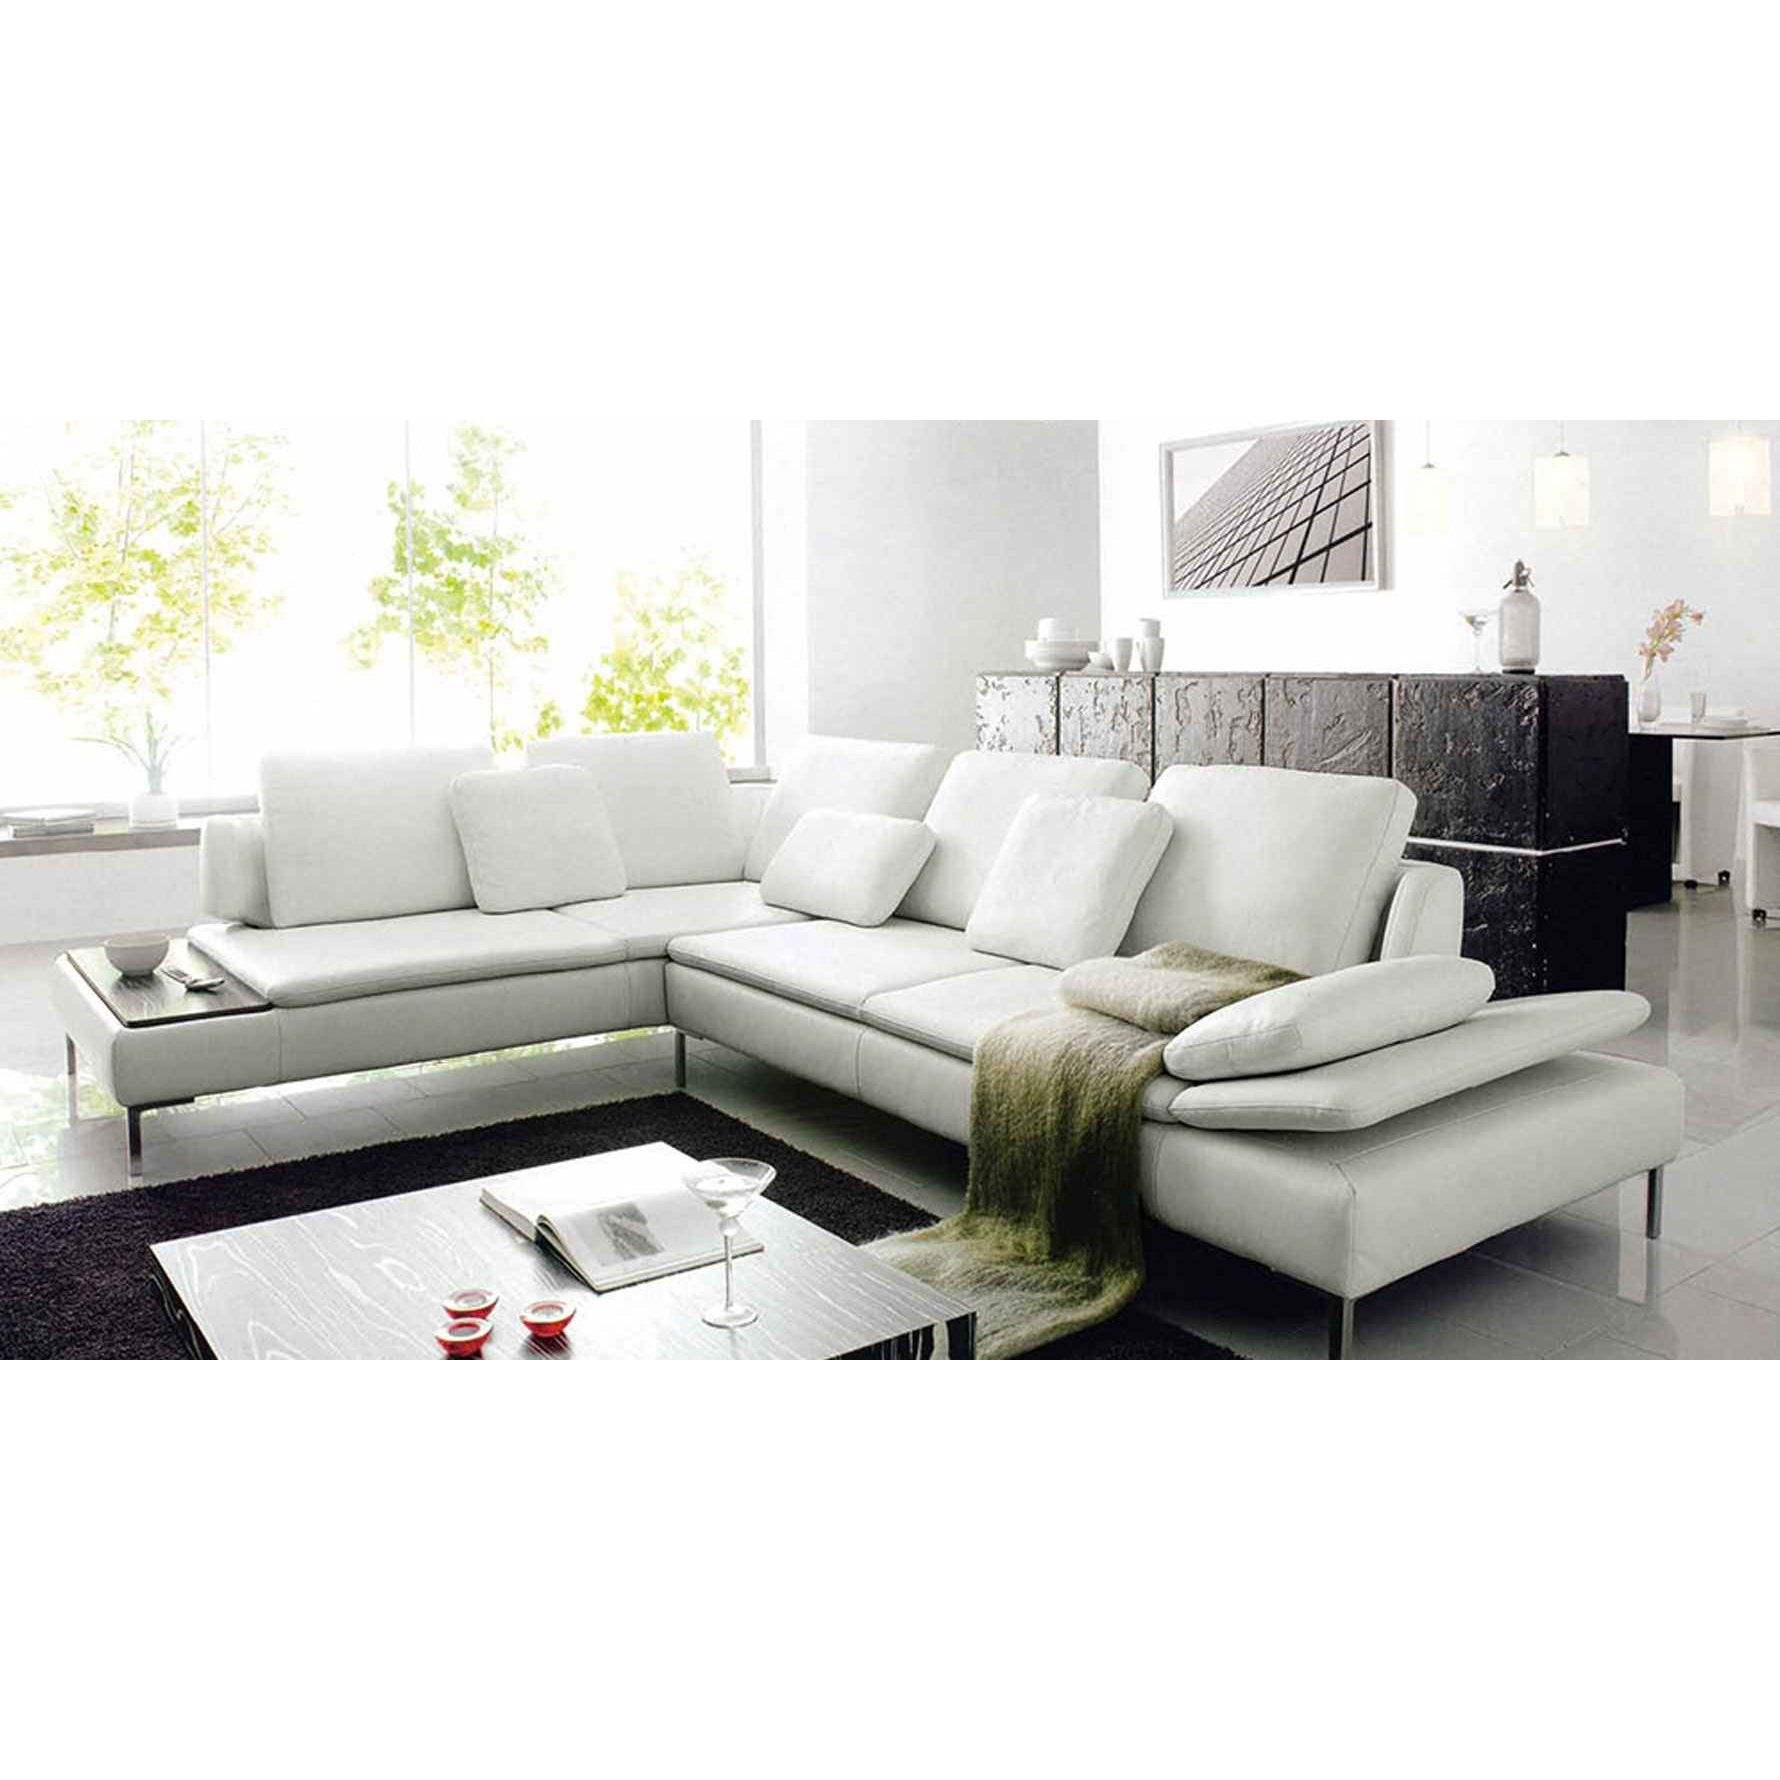 Canape angle cuir blanc maison design for Canape angle cuir but